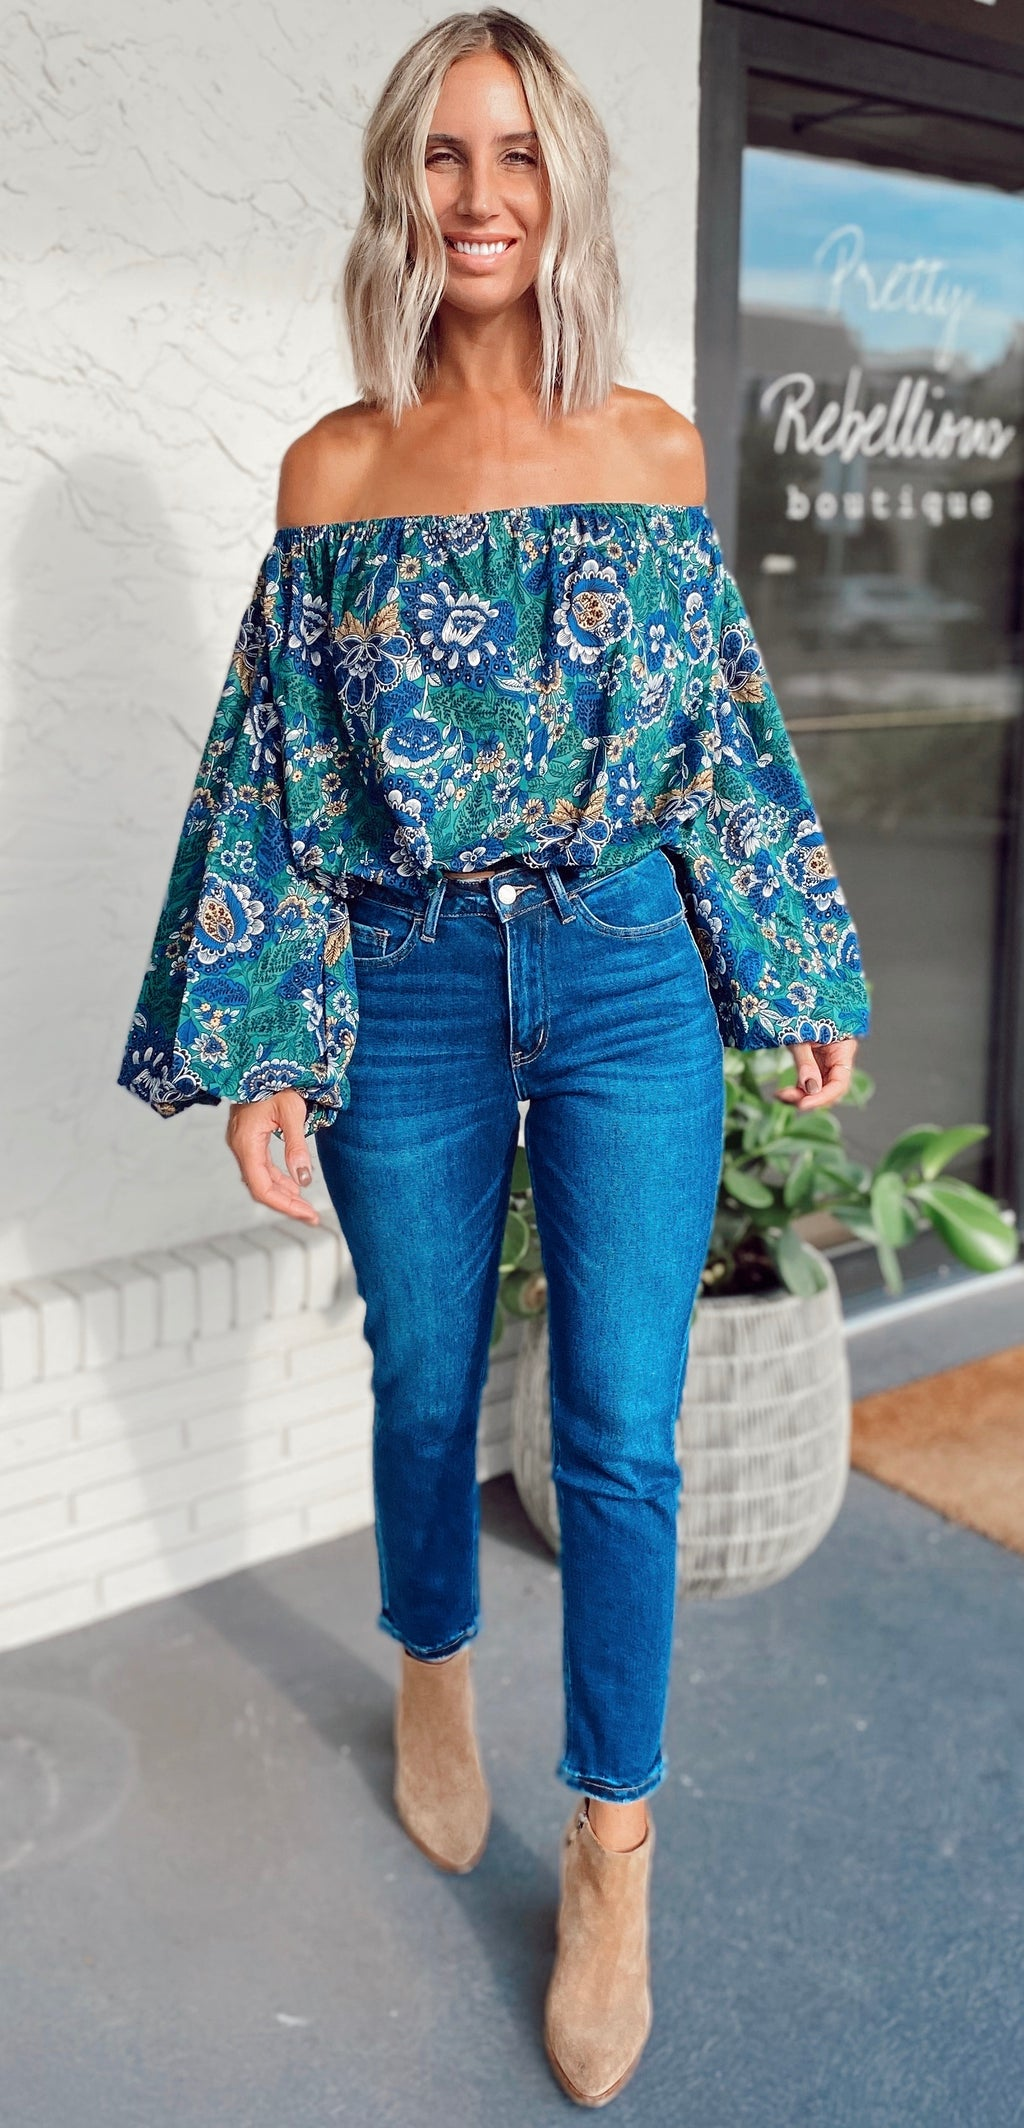 The Emerald Paisley Top